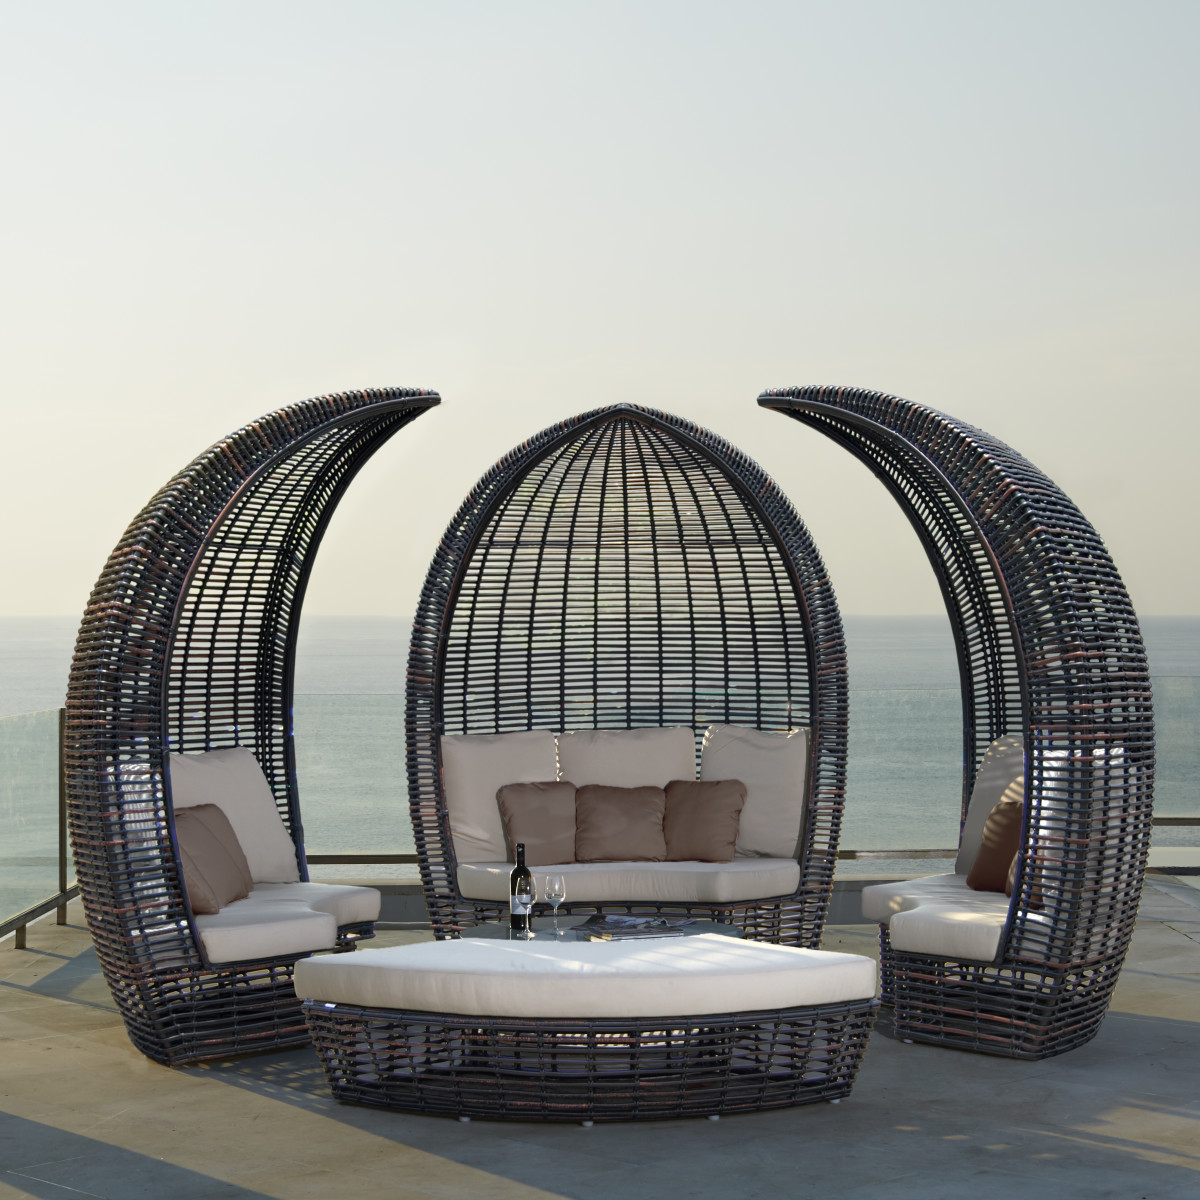 Patio furniture outside in tropical location